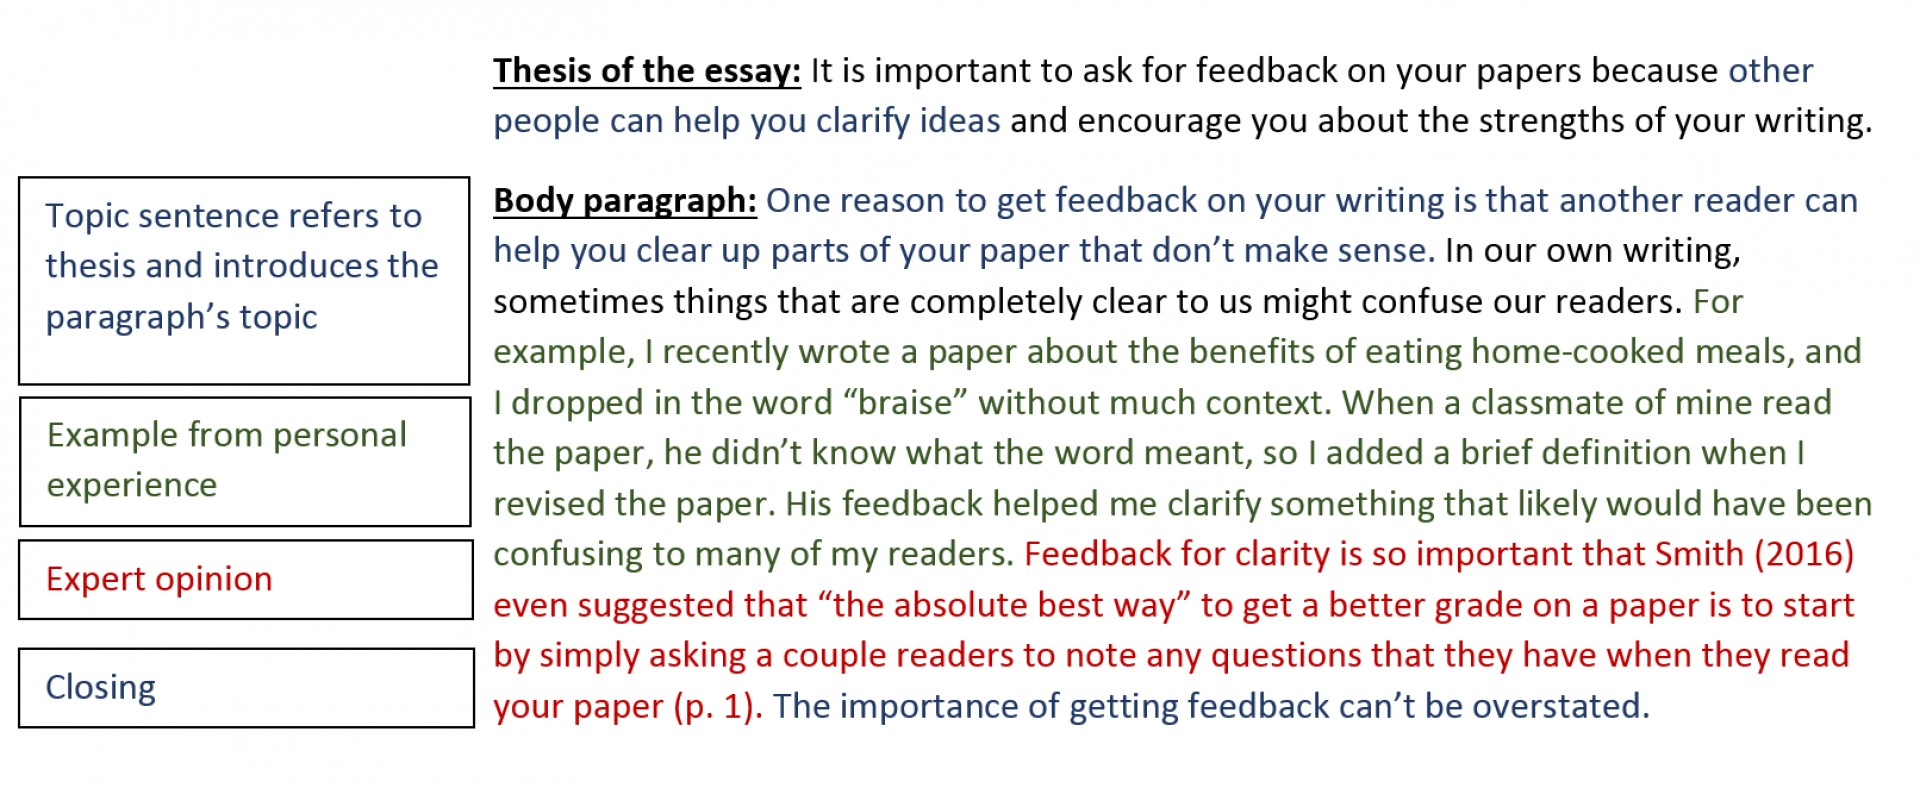 010 Essay Example Body Paragraph Sample Impressive Argumentative Sentence Starters Format First Transitions 1920